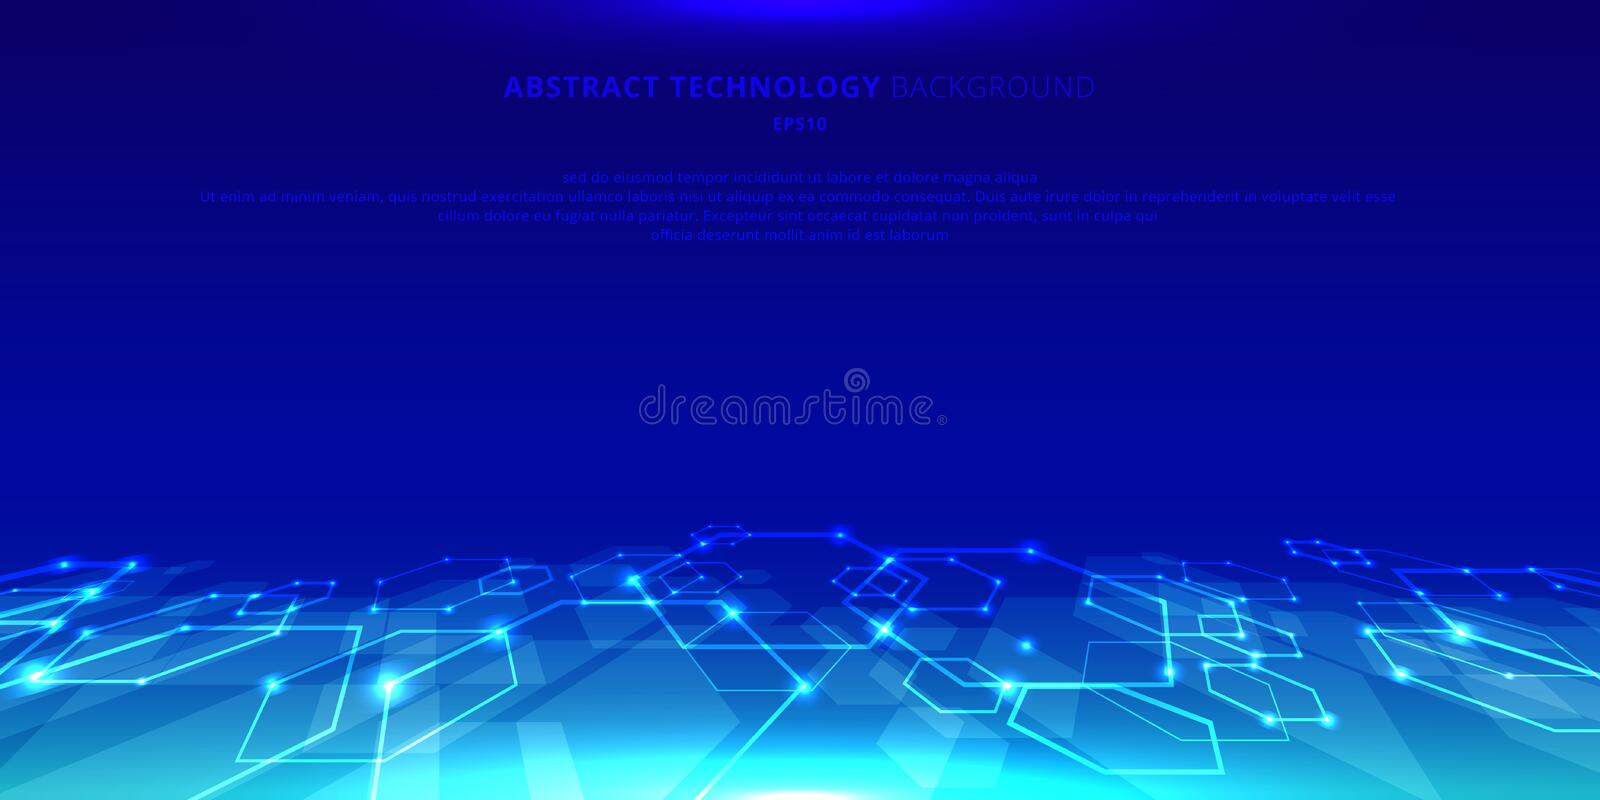 Abstract technology hexagons genetic and social network pattern perspective on blue background. Future geometric template elements royalty free illustration